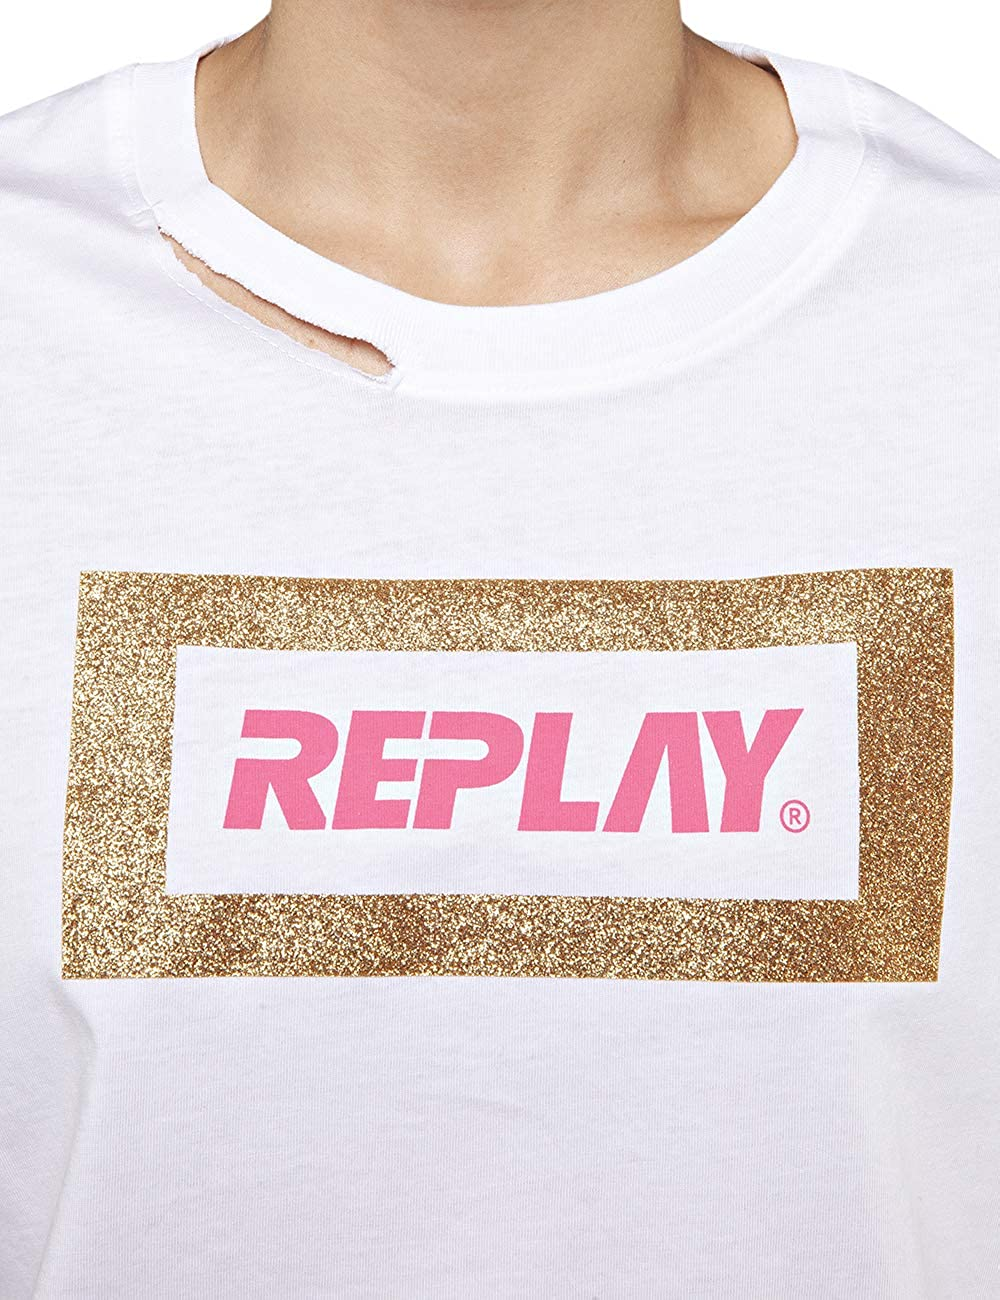 Replay Womens Glitter Frame T-Shirt White in Size L